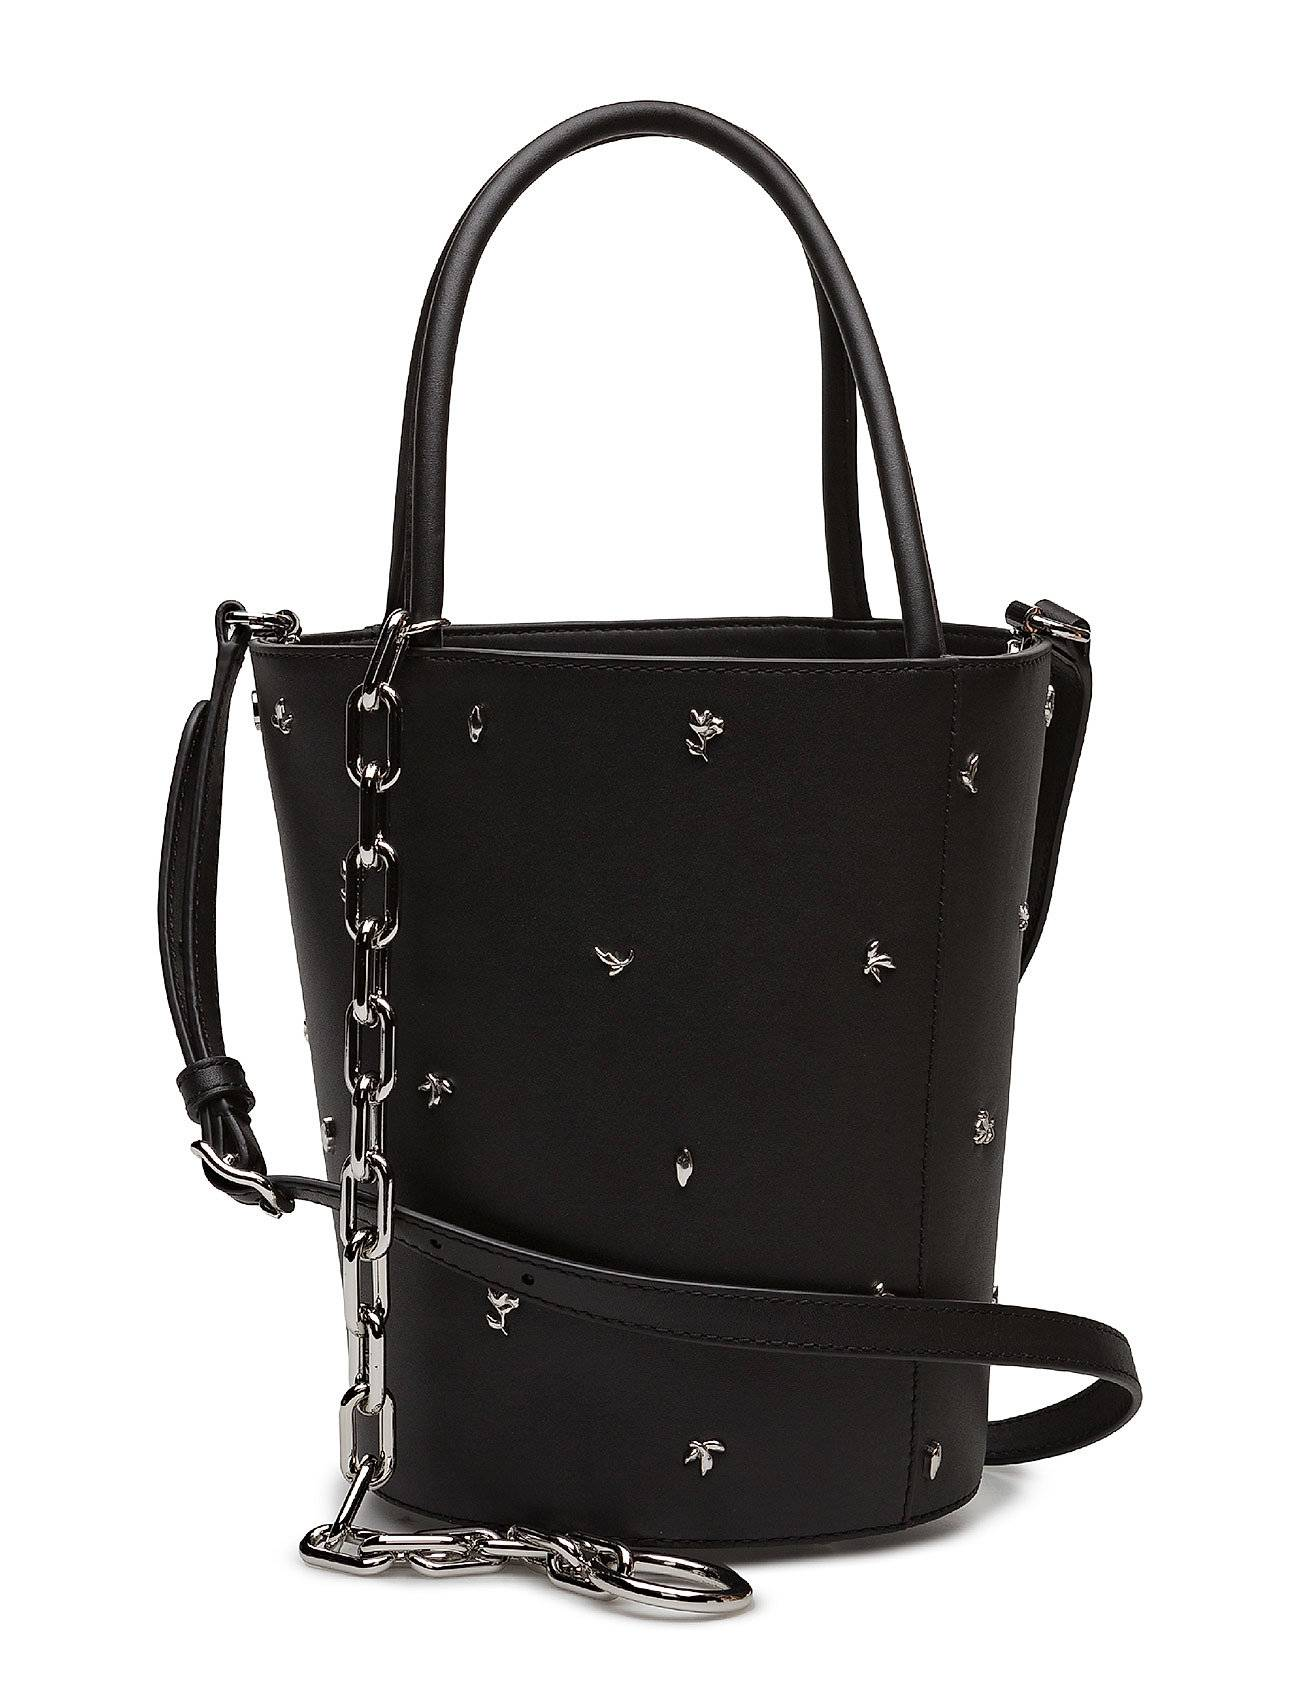 Alexander Wang Roxy Bucket Blk Smooth Shiny Calfw/Rose Studs/Ir